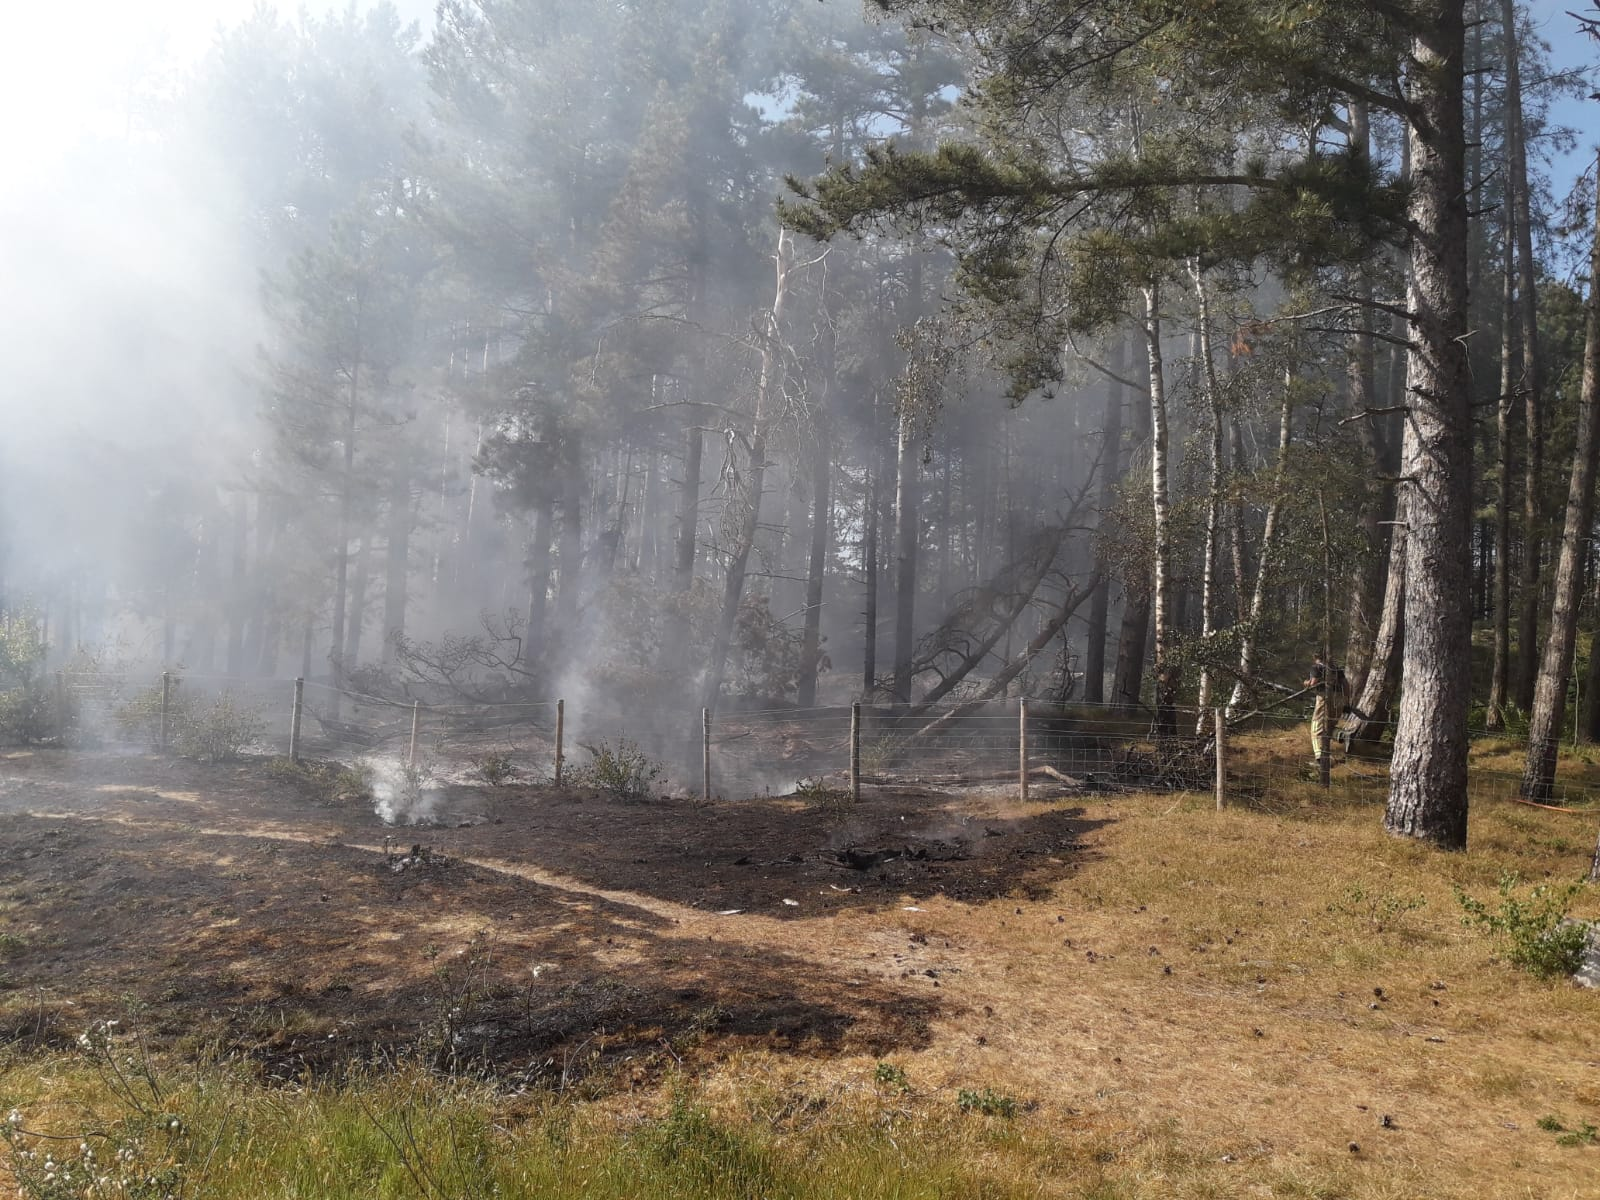 Firefighters have issued a warning after a blaze at Formby Pinewoods